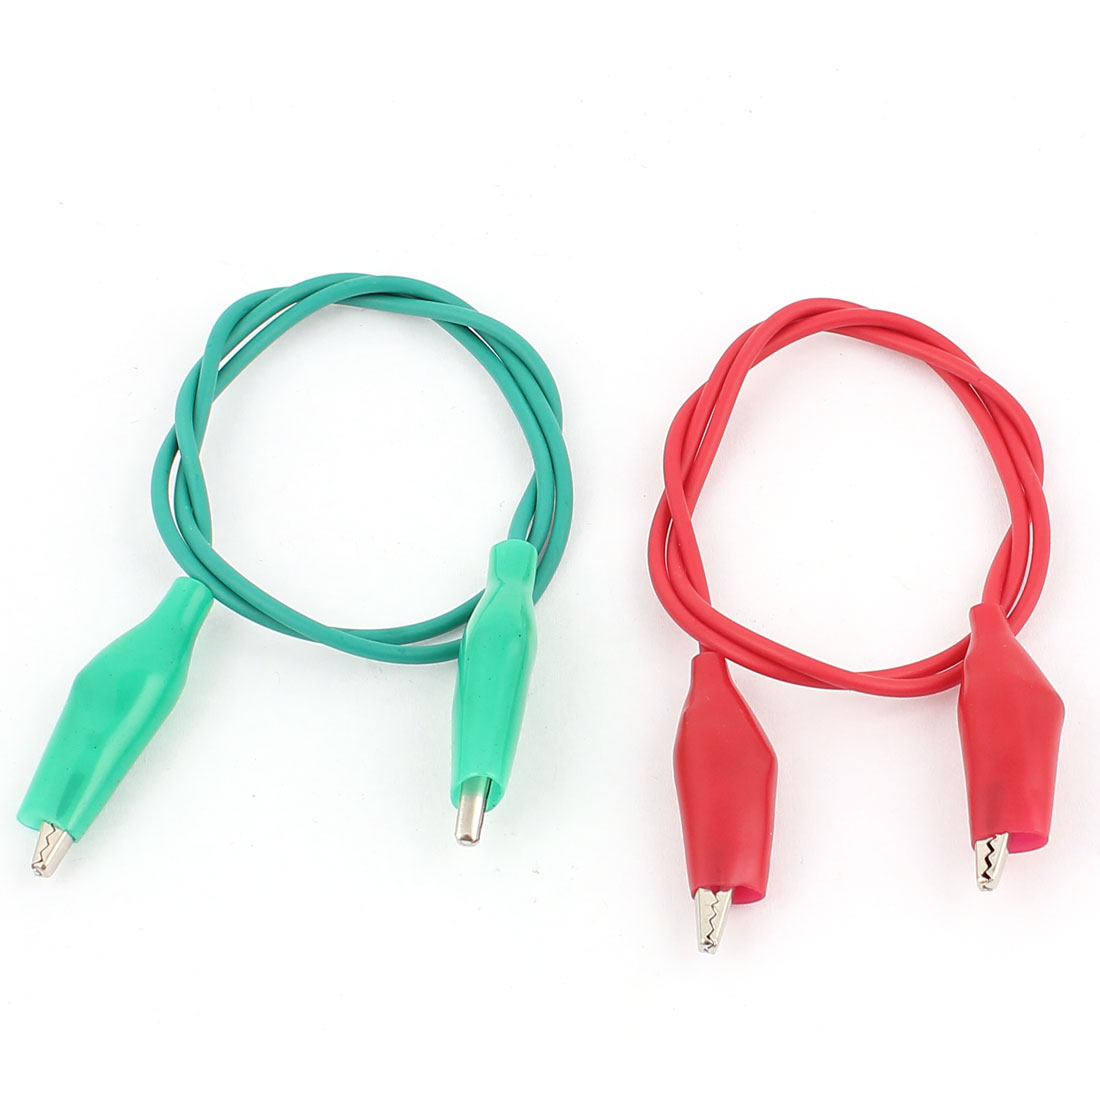 2pcs Red Green Double Ended Alligator Roach Clip Test Leads Jumper Probe Cable Wire 47cm